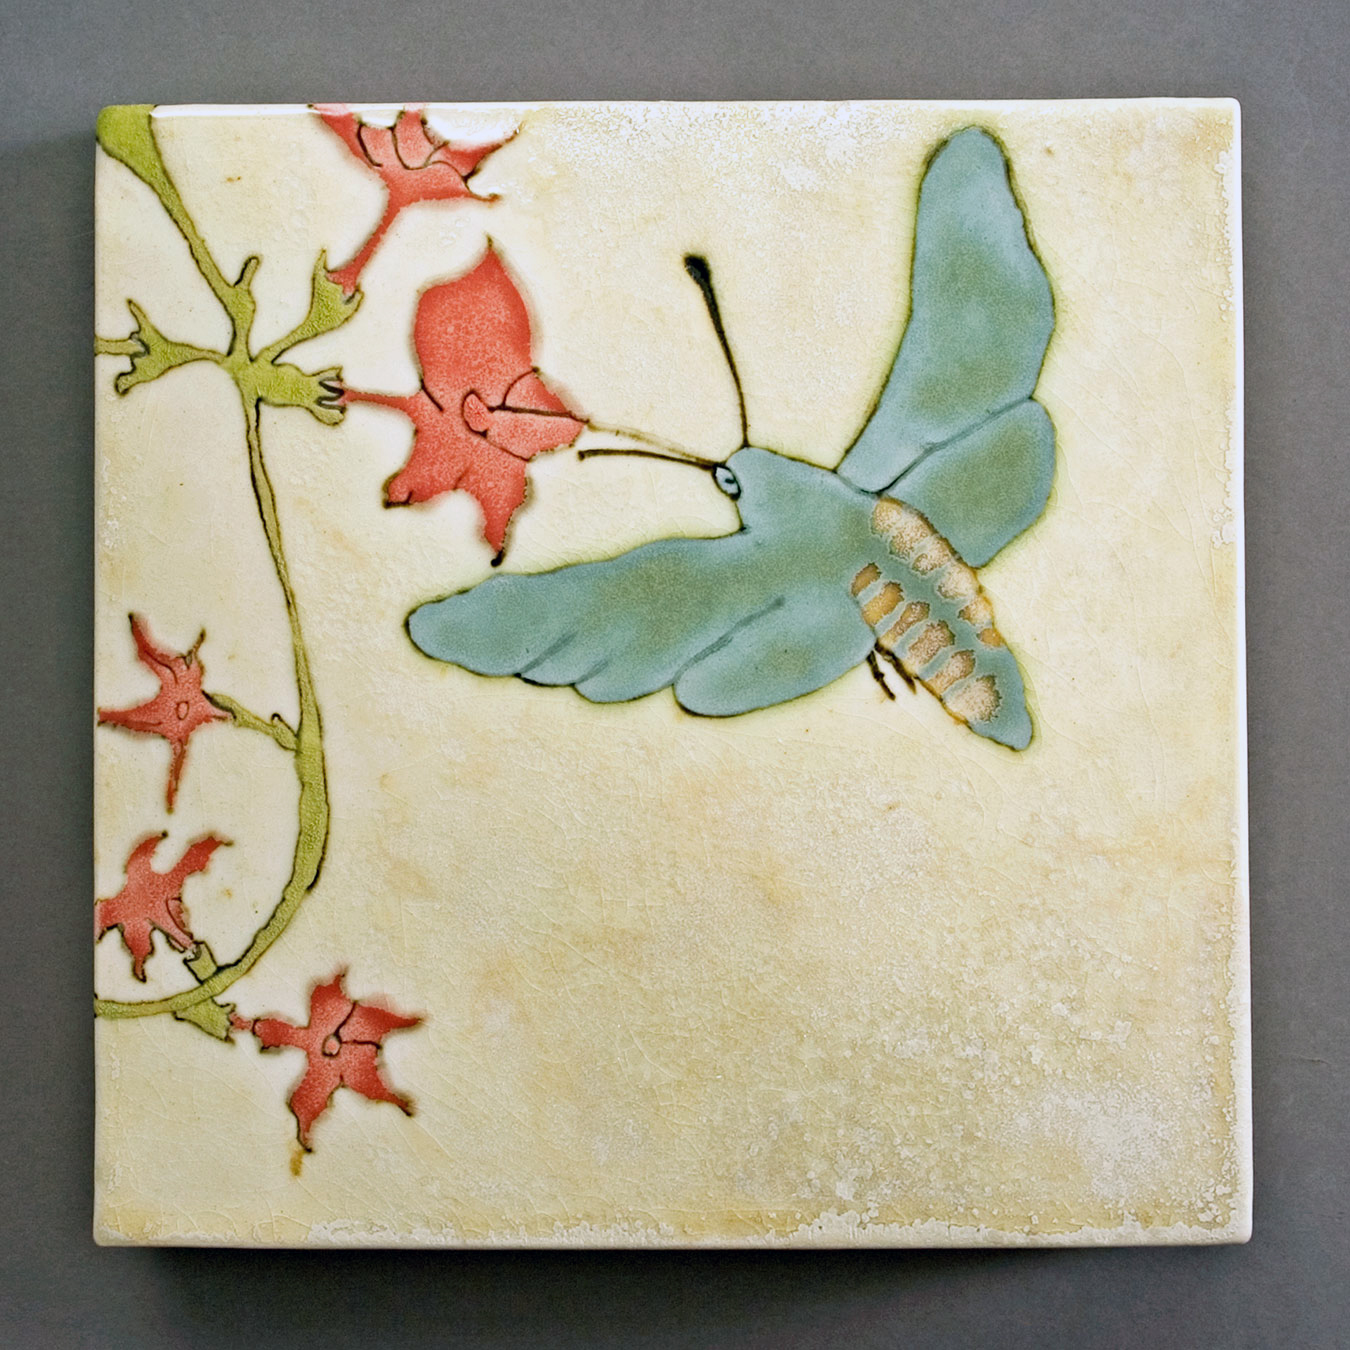 Blue-Hawk-Moth-Ceramic-Art-Glaze-Painting-Samantha-Henneke.jpg